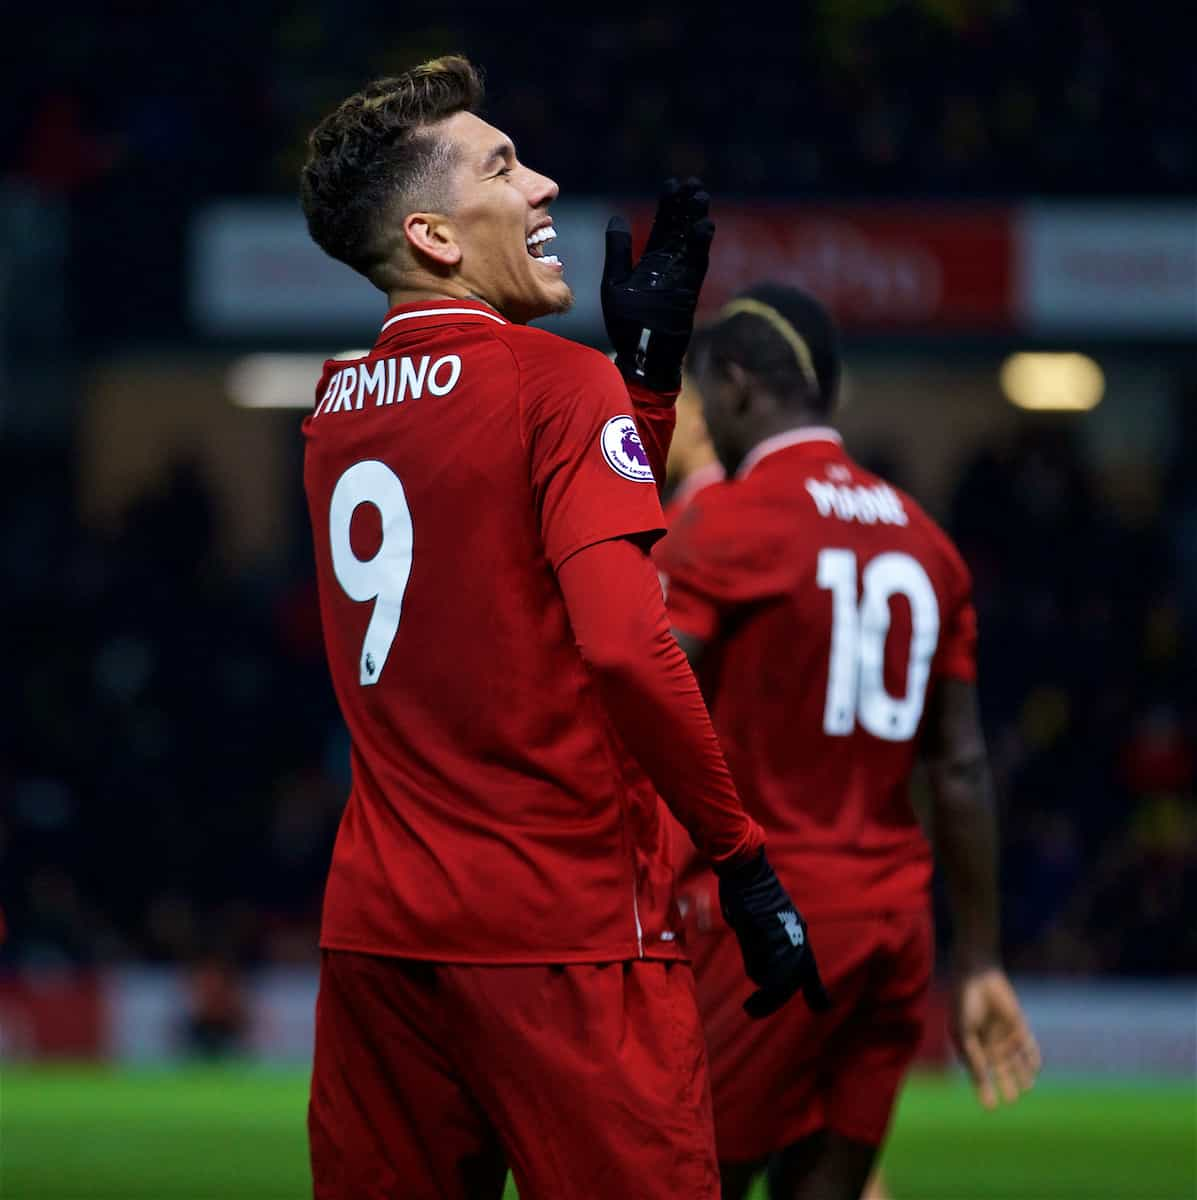 WATFORD, ENGLAND - Saturday, November 24, 2018: Liverpool's Roberto Firmino celebrates scoring the third goal during the FA Premier League match between Watford FC and Liverpool FC at Vicarage Road. (Pic by David Rawcliffe/Propaganda)